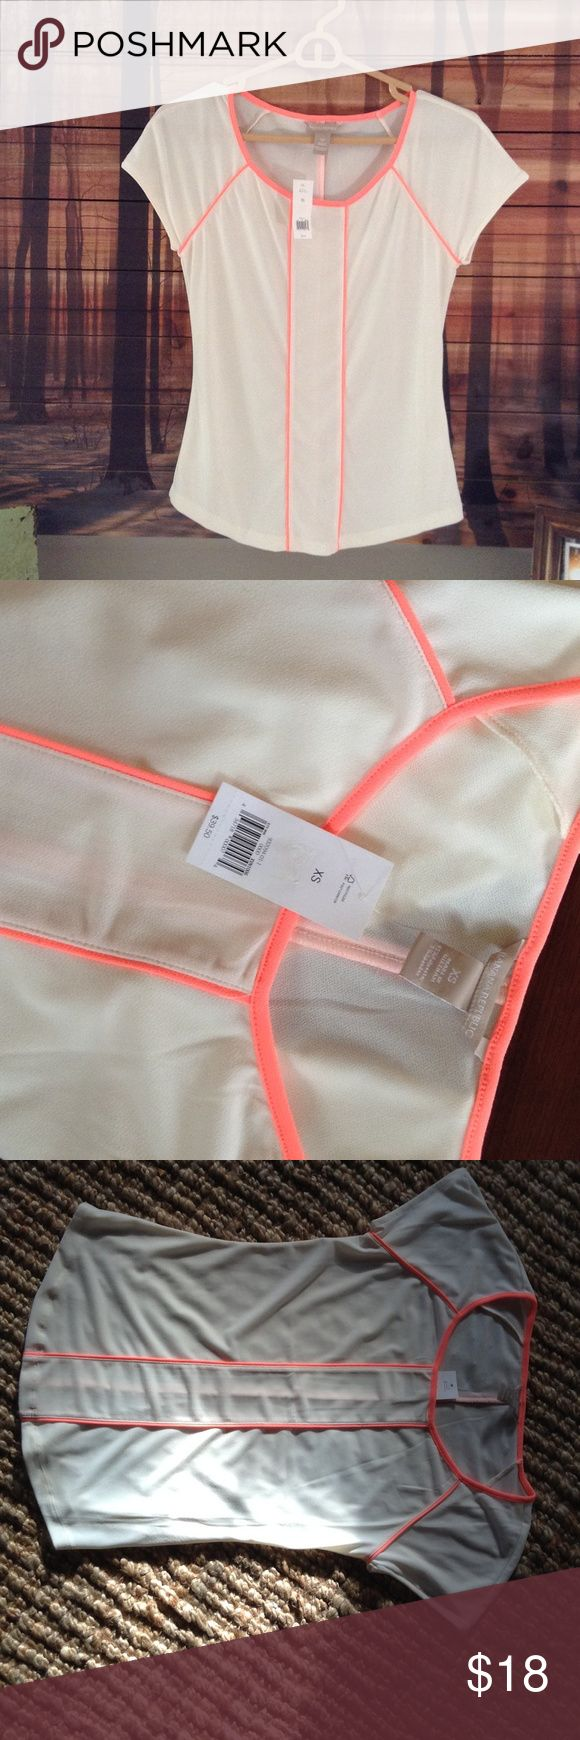 Banana Republic blouse NWT Off white with coral/ florescent piping. Beautiful  fitted shape. 95 percent poly, 5 spandex. Never worn. NWT Banana Republic Tops Blouses